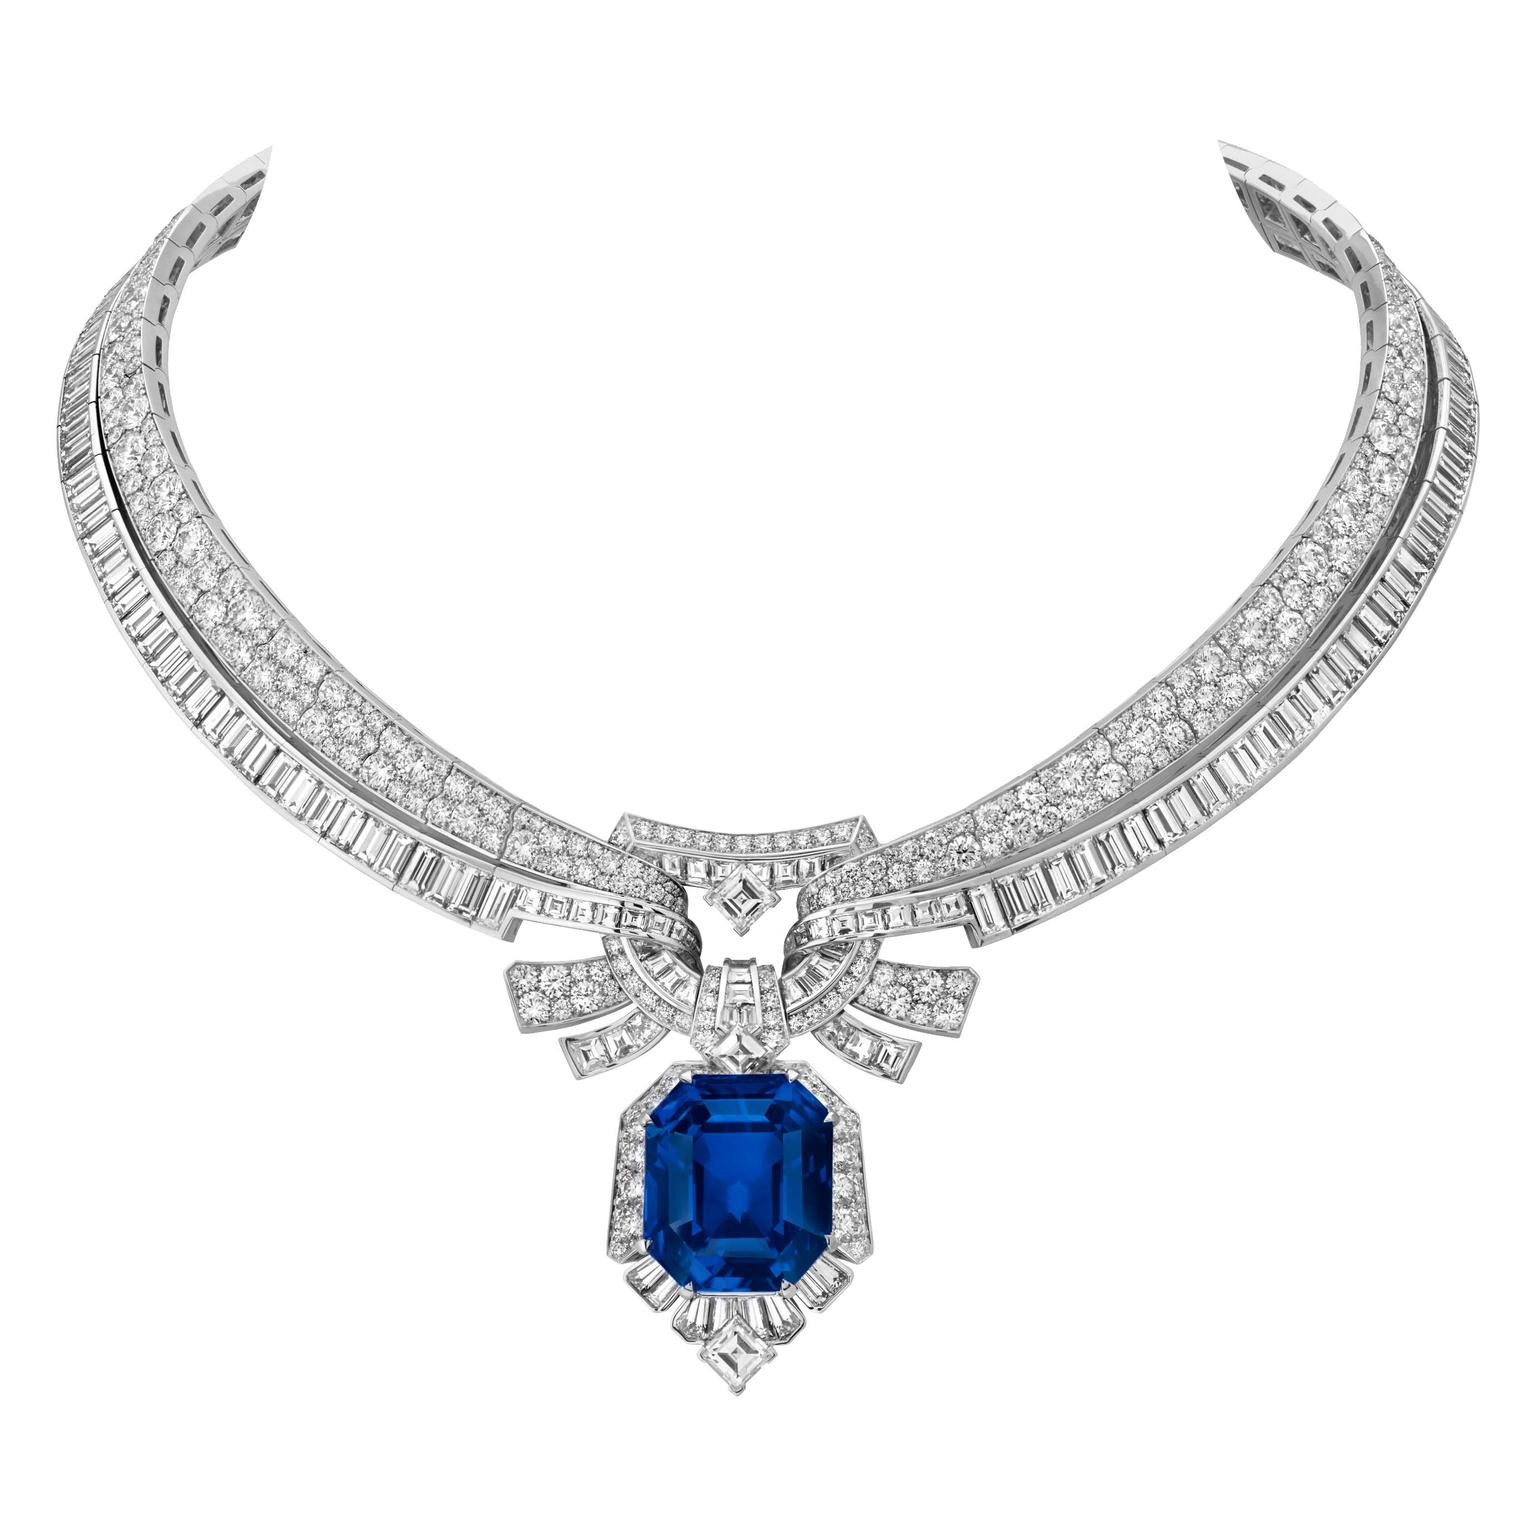 Van Cleef & Arpels Maiolica necklace Romeo and Juliet jewels